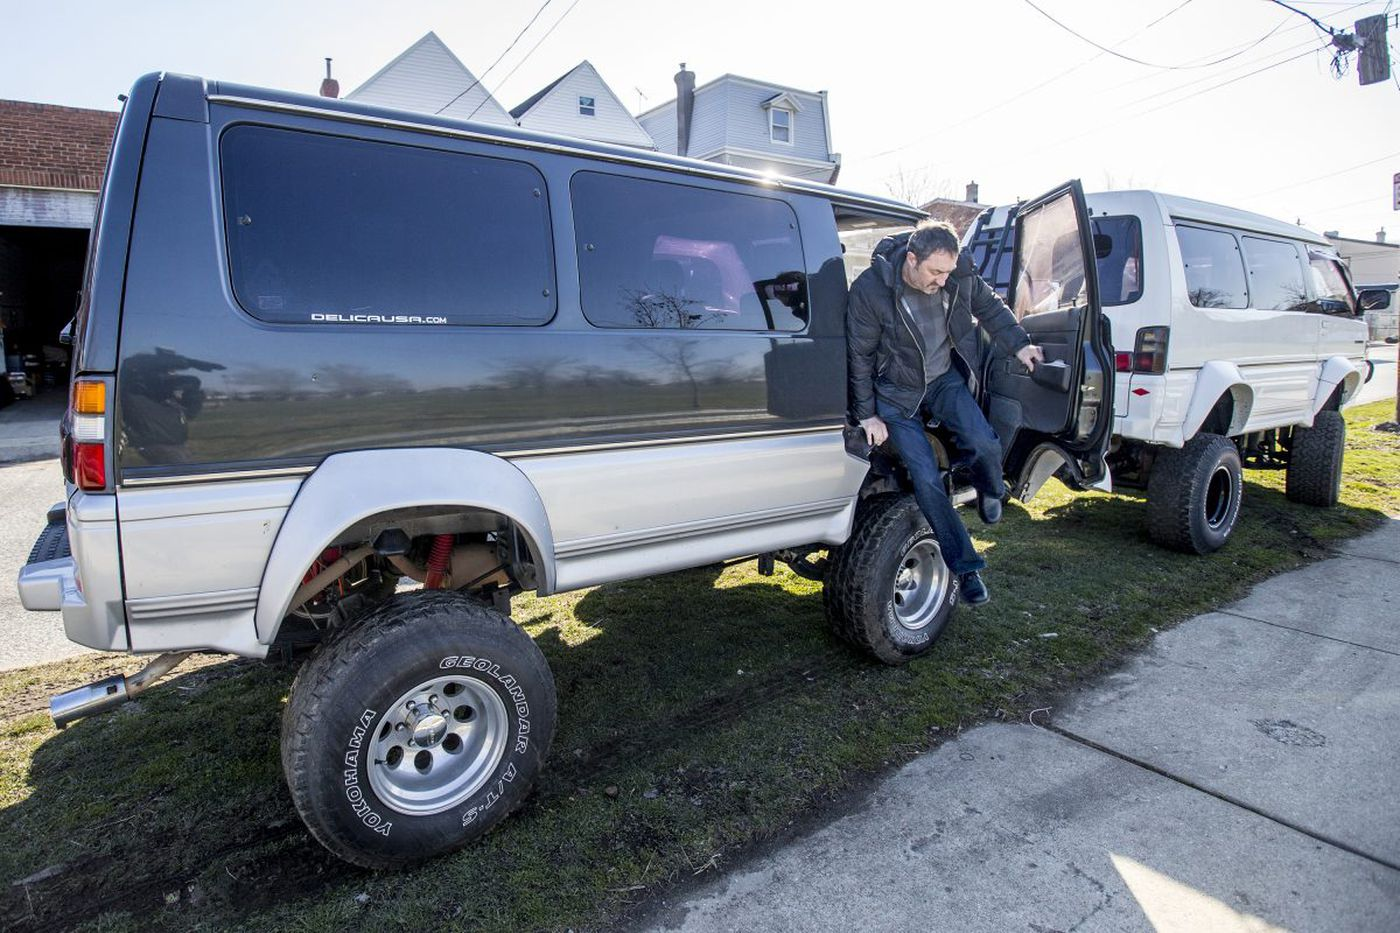 From Japan to Frankford to the great outdoors, local dealer finding niche market for quirky van